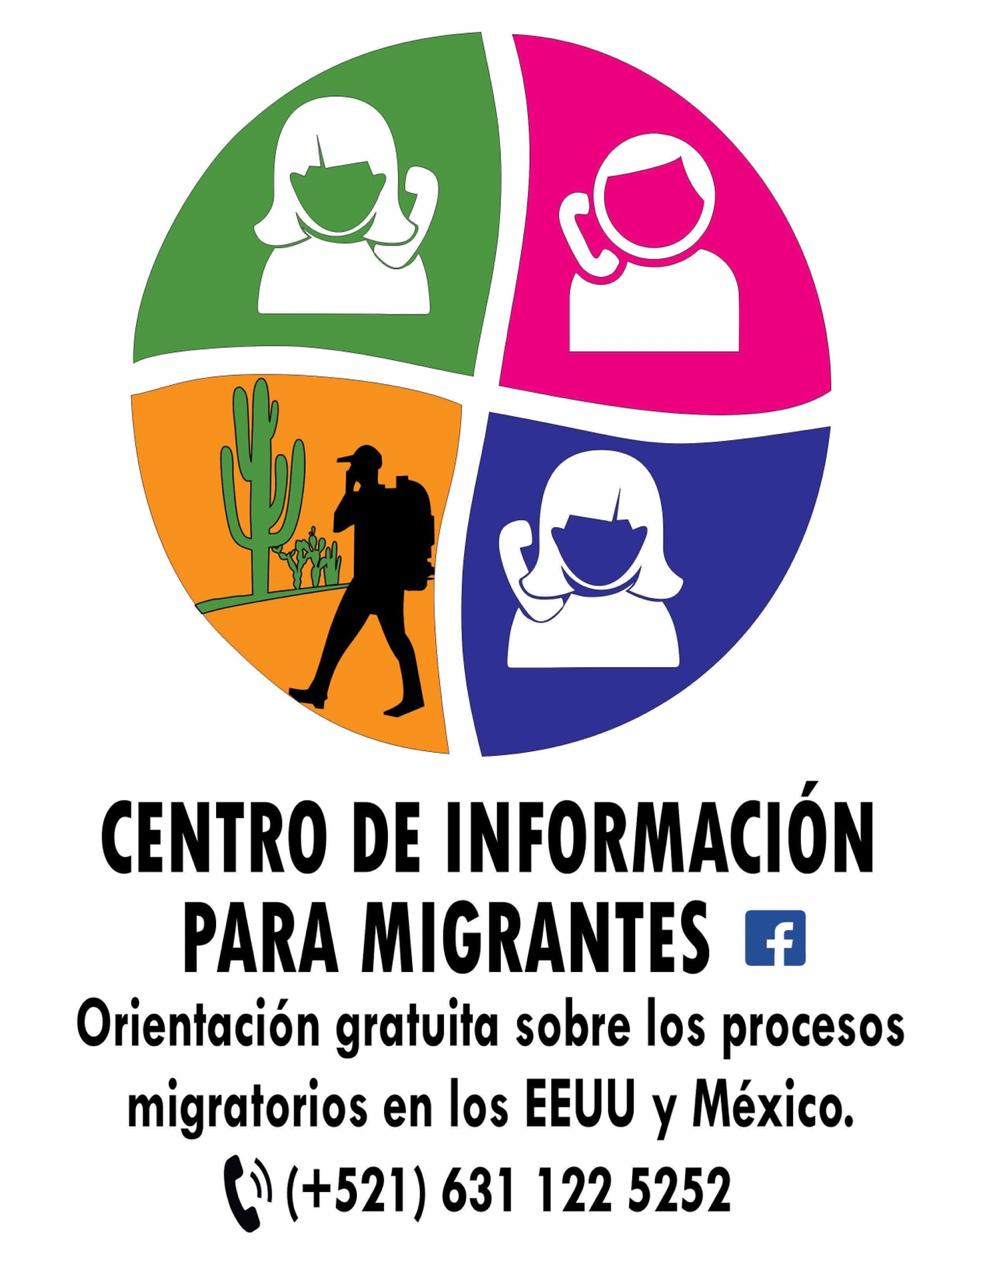 This information hotline is for migrants seeking support and resources – calling via WhatsApp from the U.S. will avoid charges.